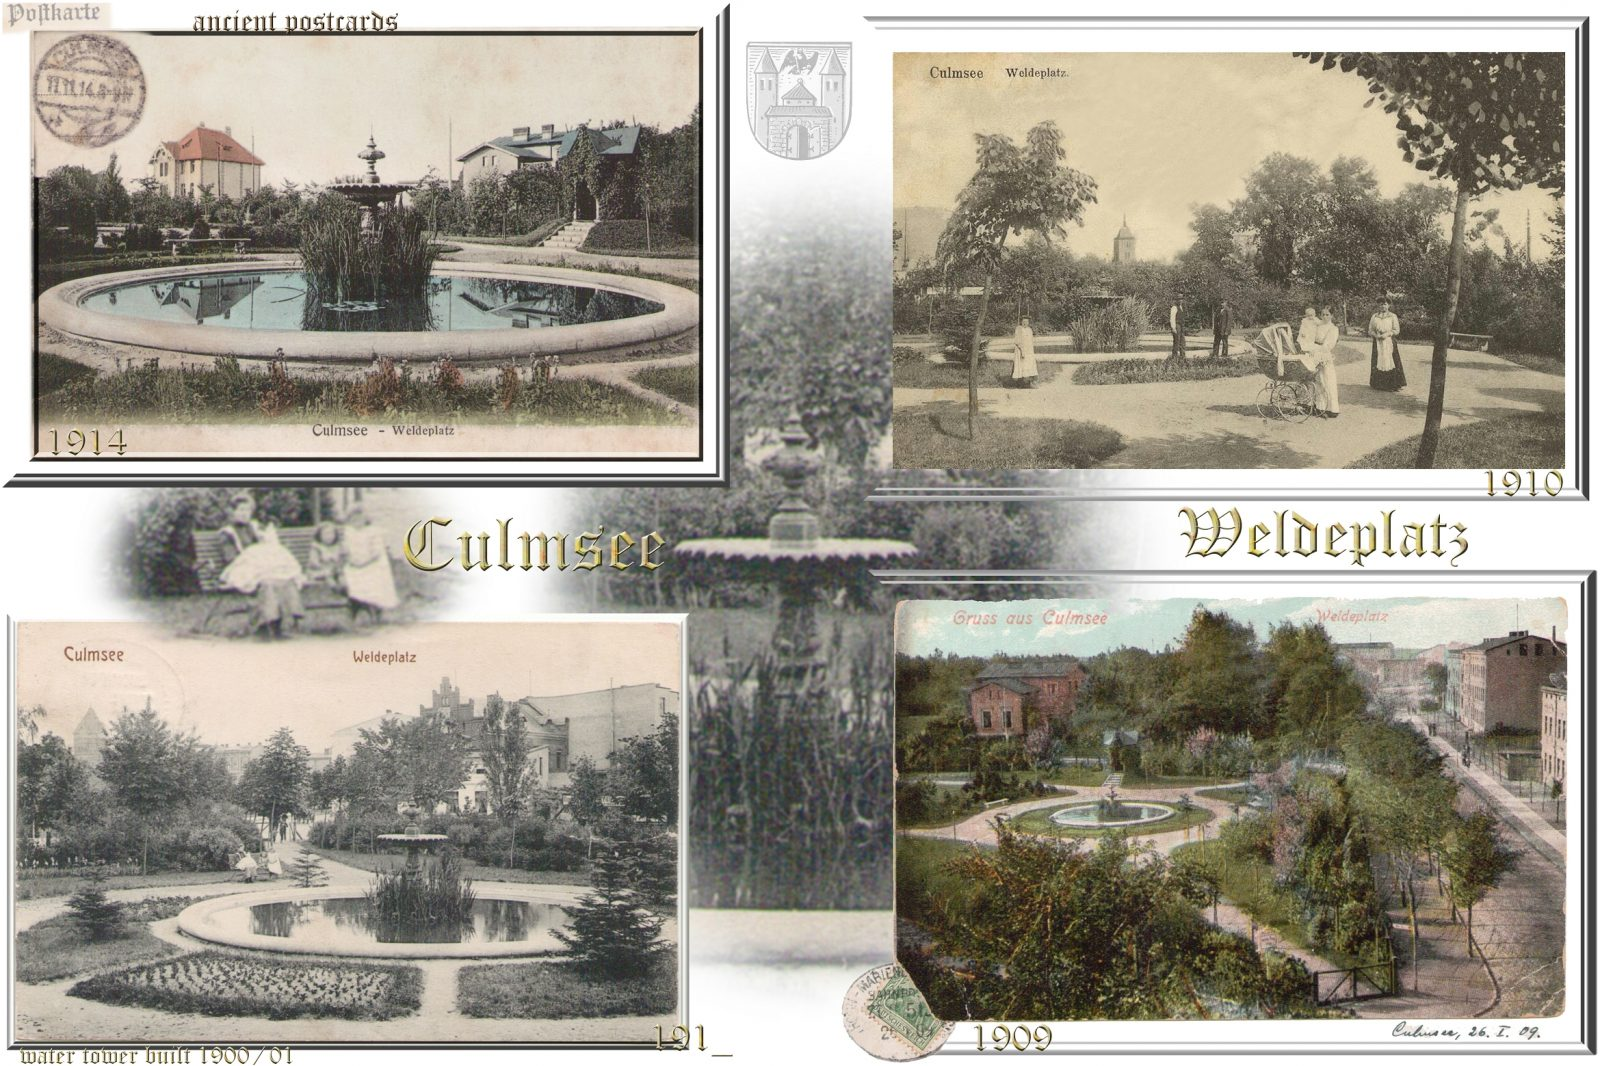 Culmsee Weldeplatz ancient postcards